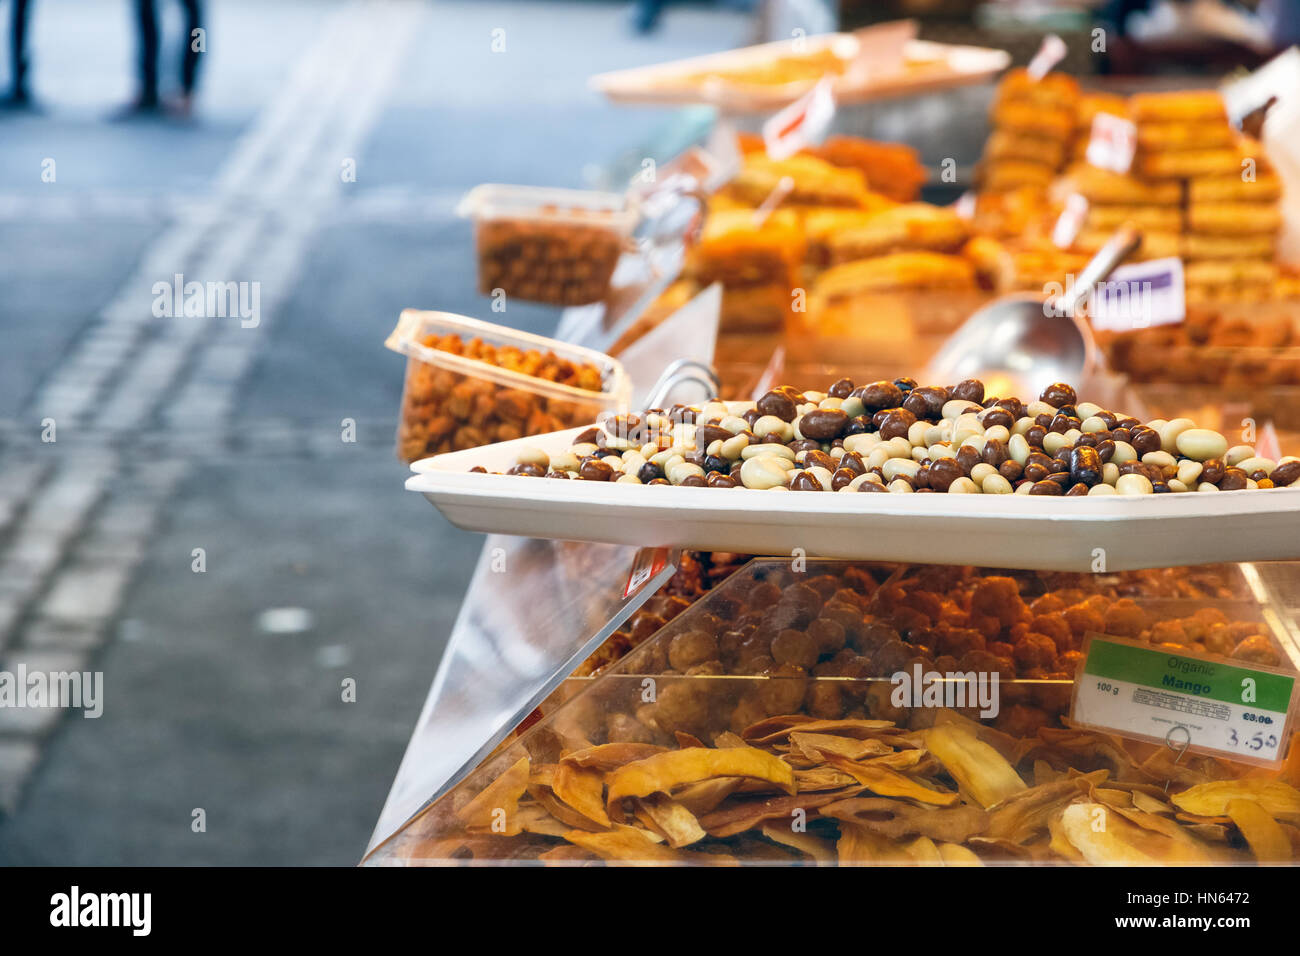 Chocolate macadamia nuts on display at a dried fruits and nuts stall in Borough Market, London - Stock Image